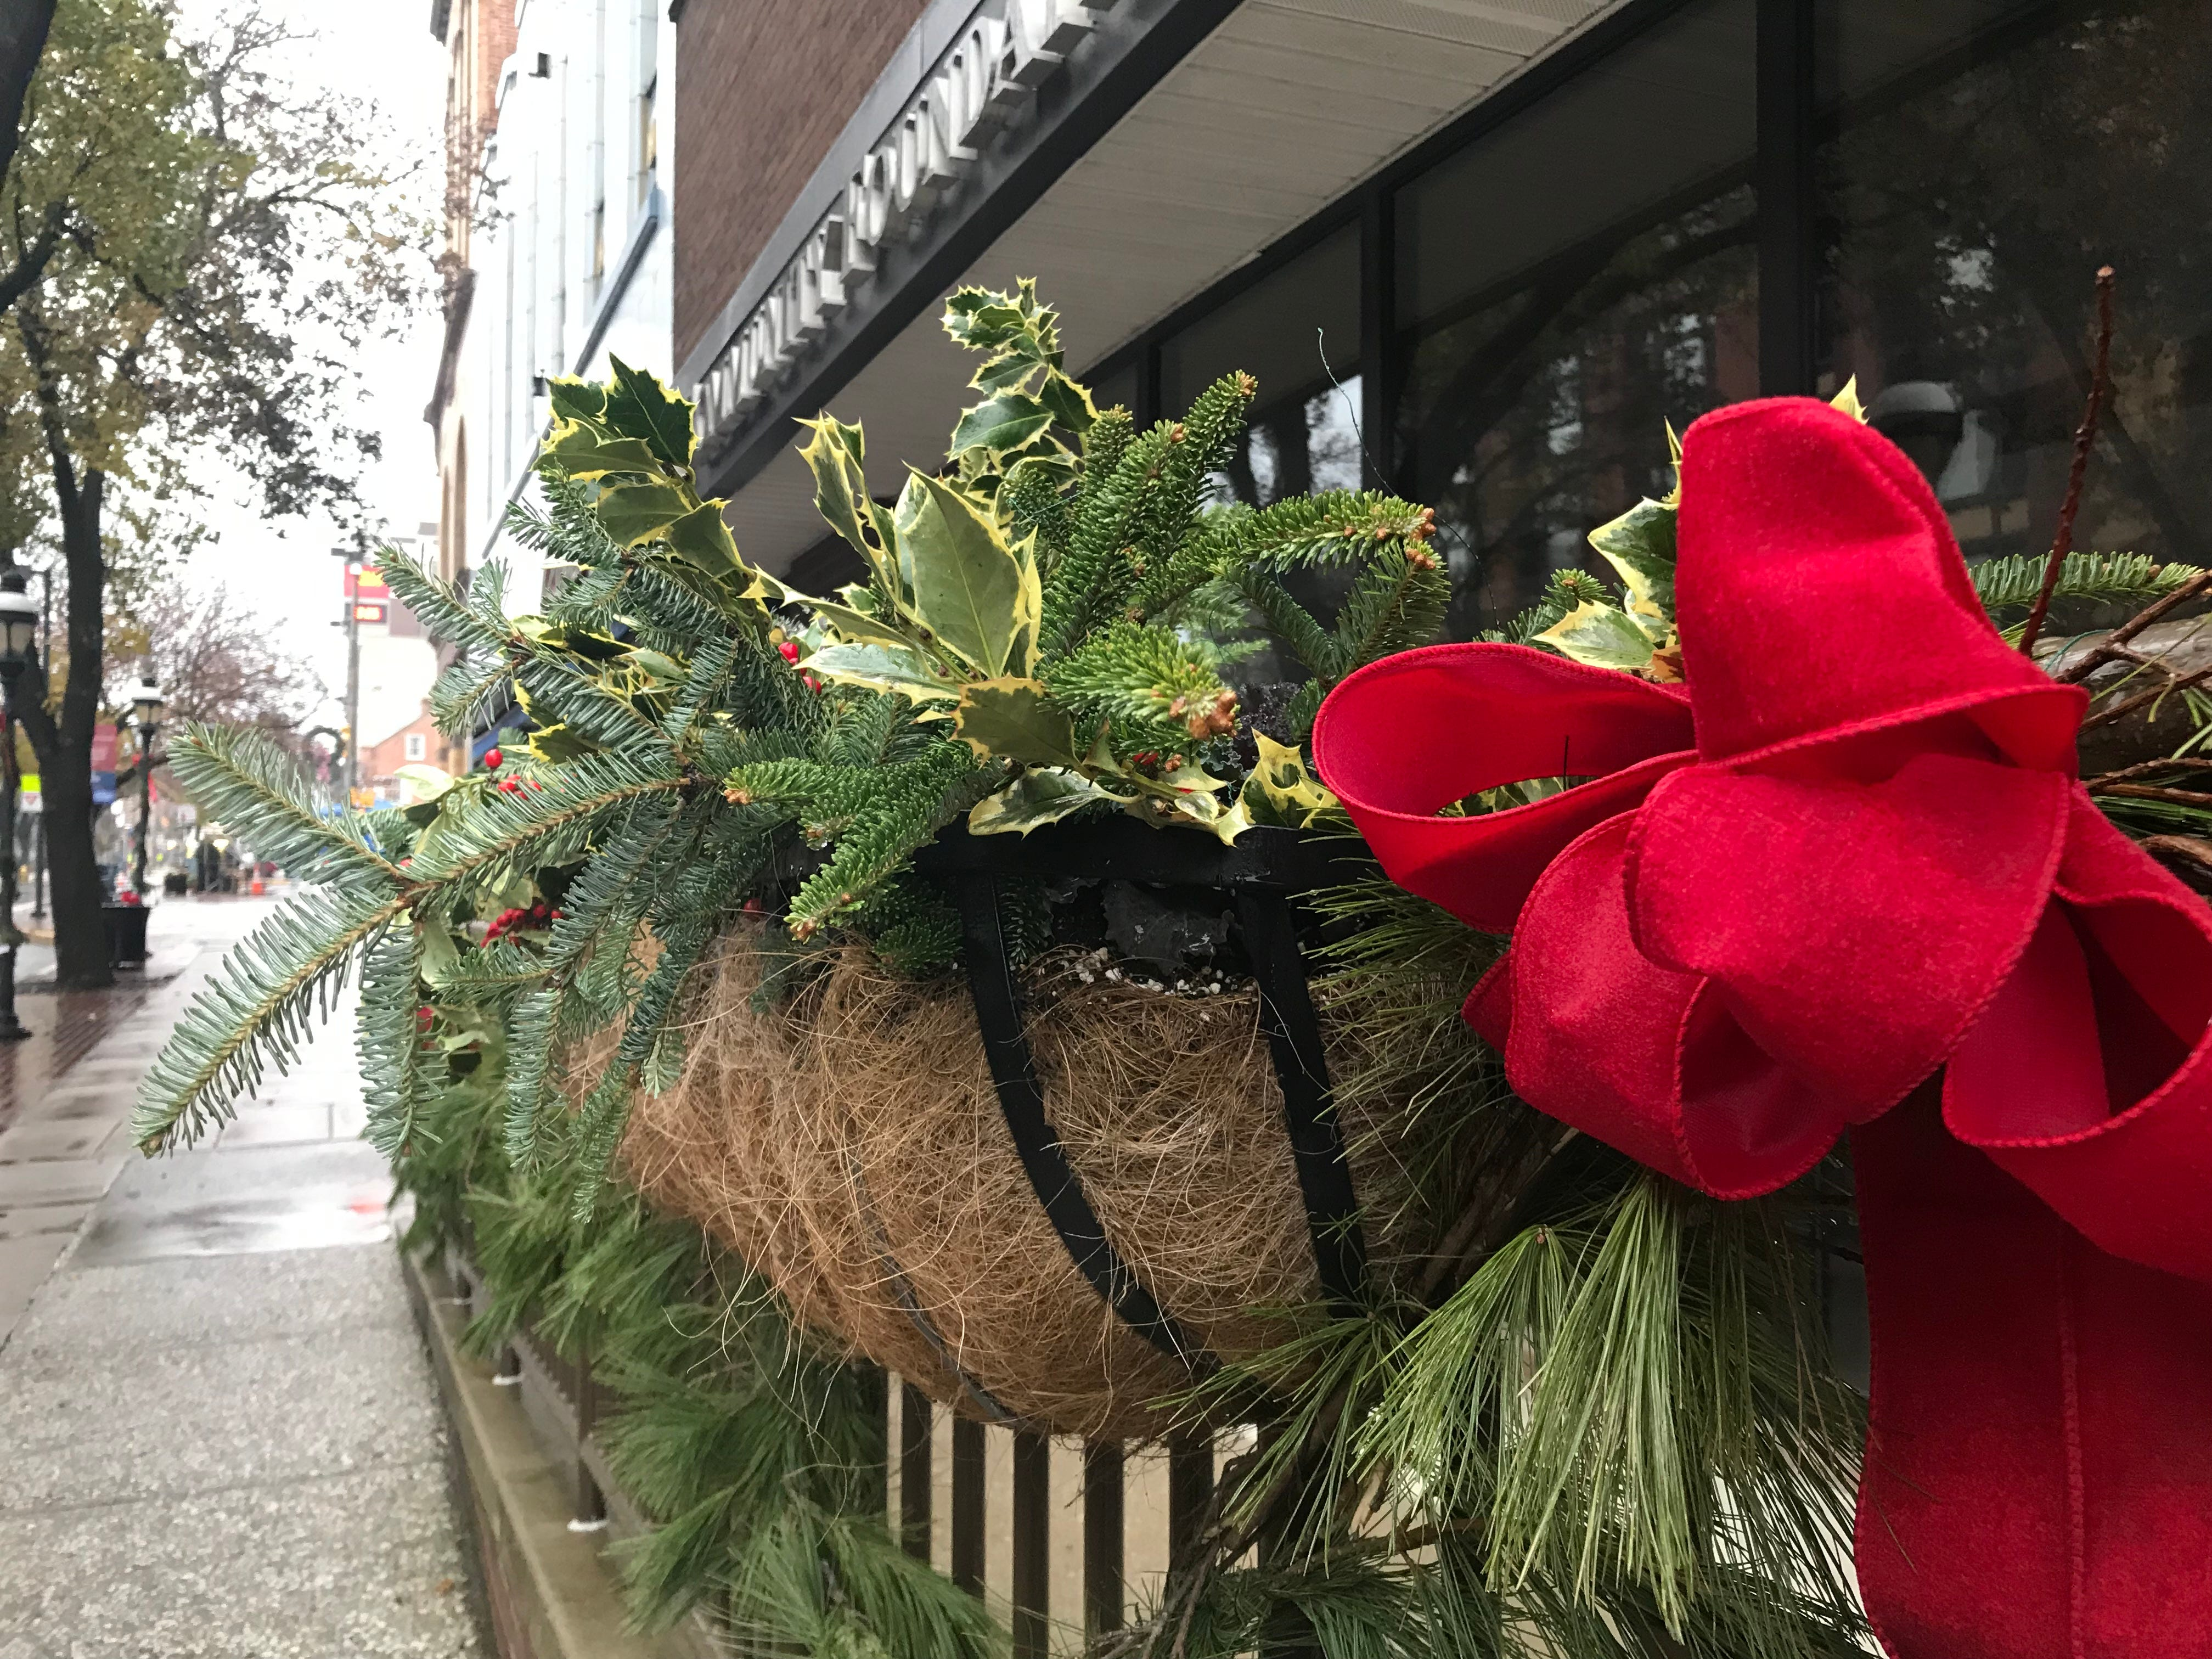 West Market Street in York is decorated for the holiday season at Light Up York on Saturday, Dec. 1, 2018.